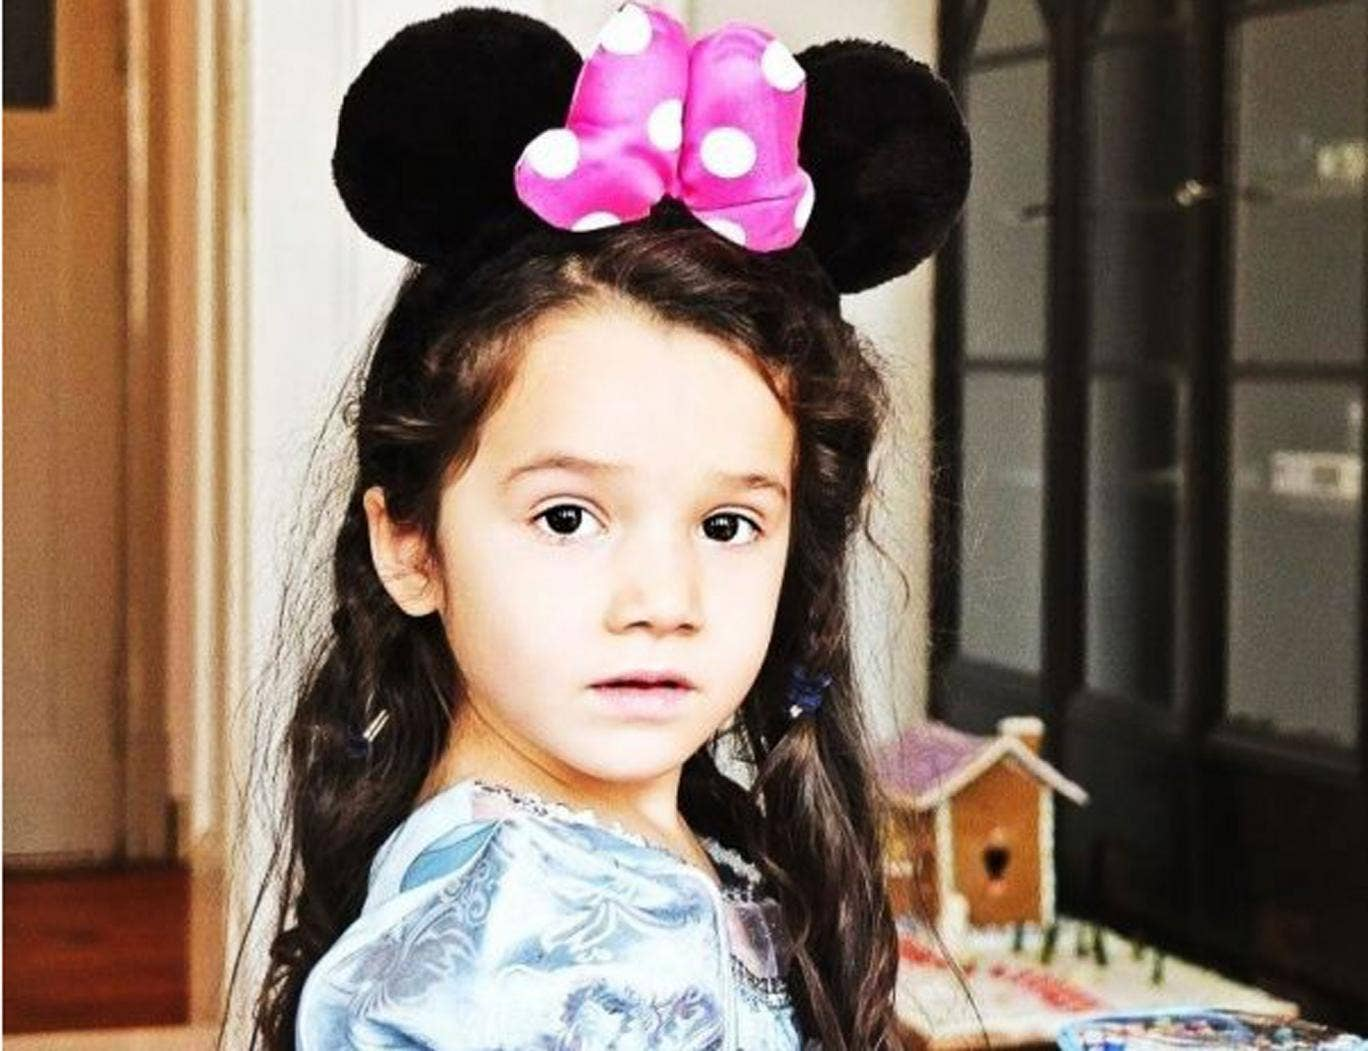 All ears: Michael Volpe's daughter, Fiora